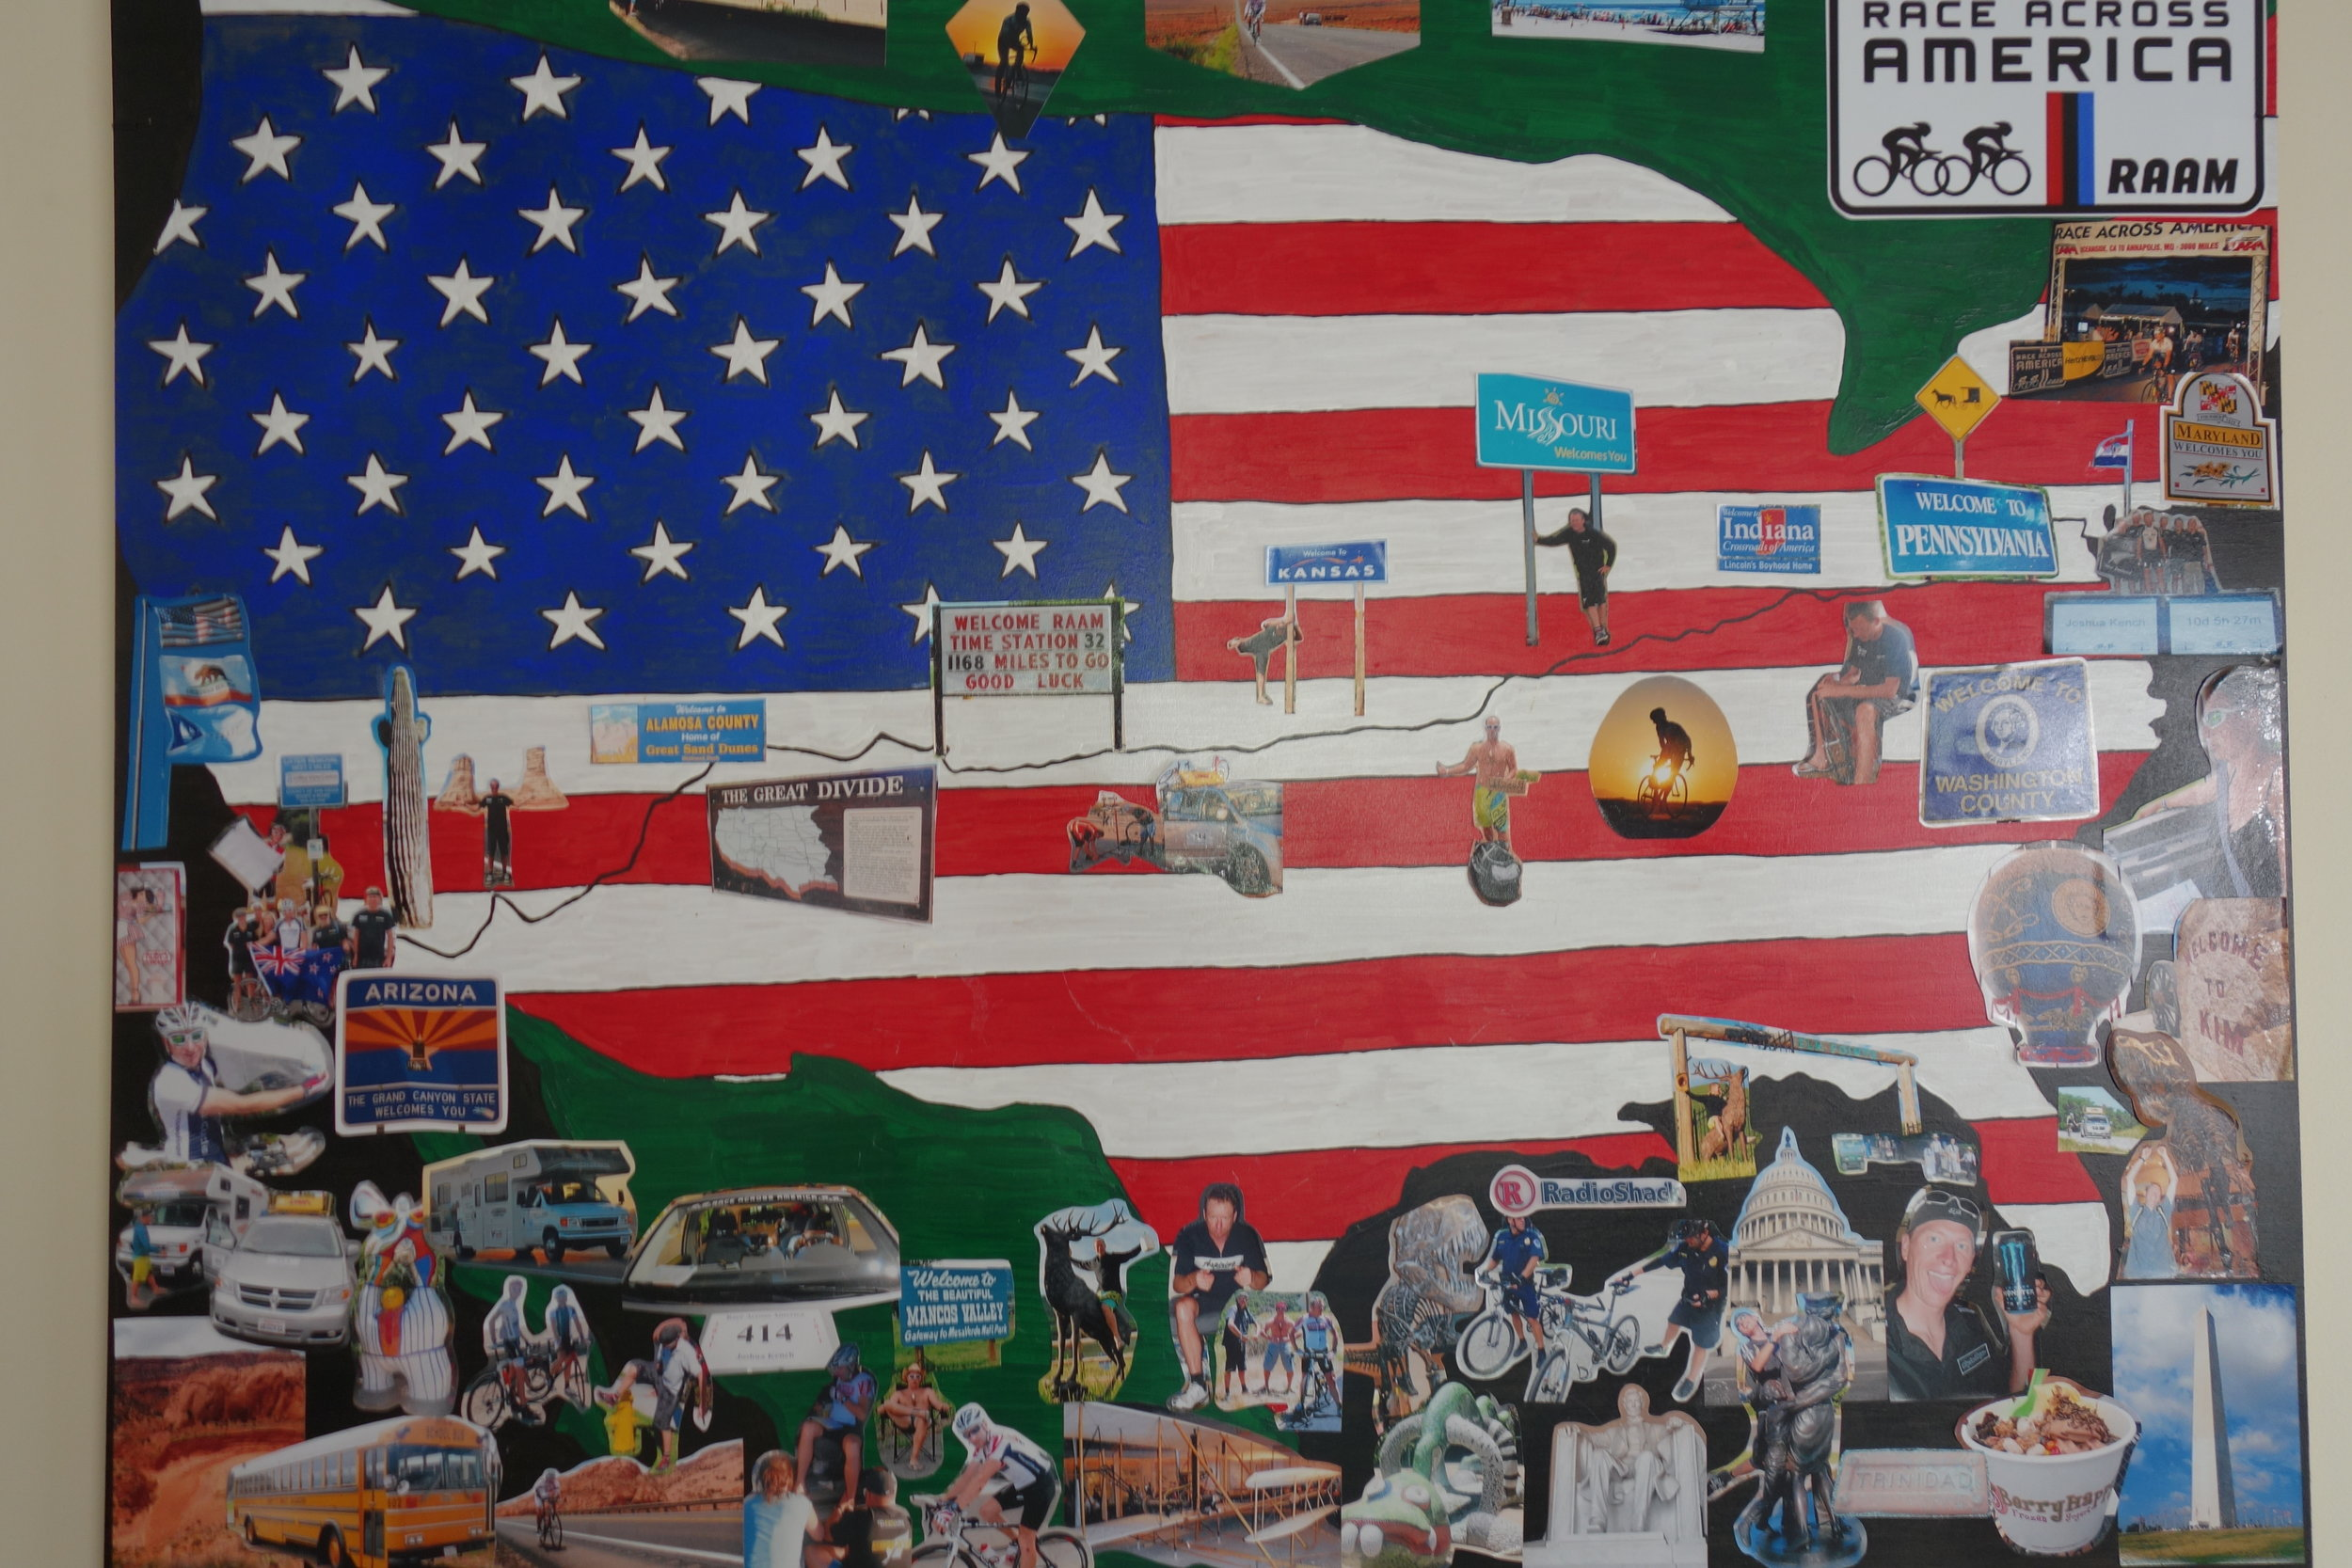 USA roadtrip collage. My wife wants me to burn my old photos, something to do with the kids getting the wrong idea?